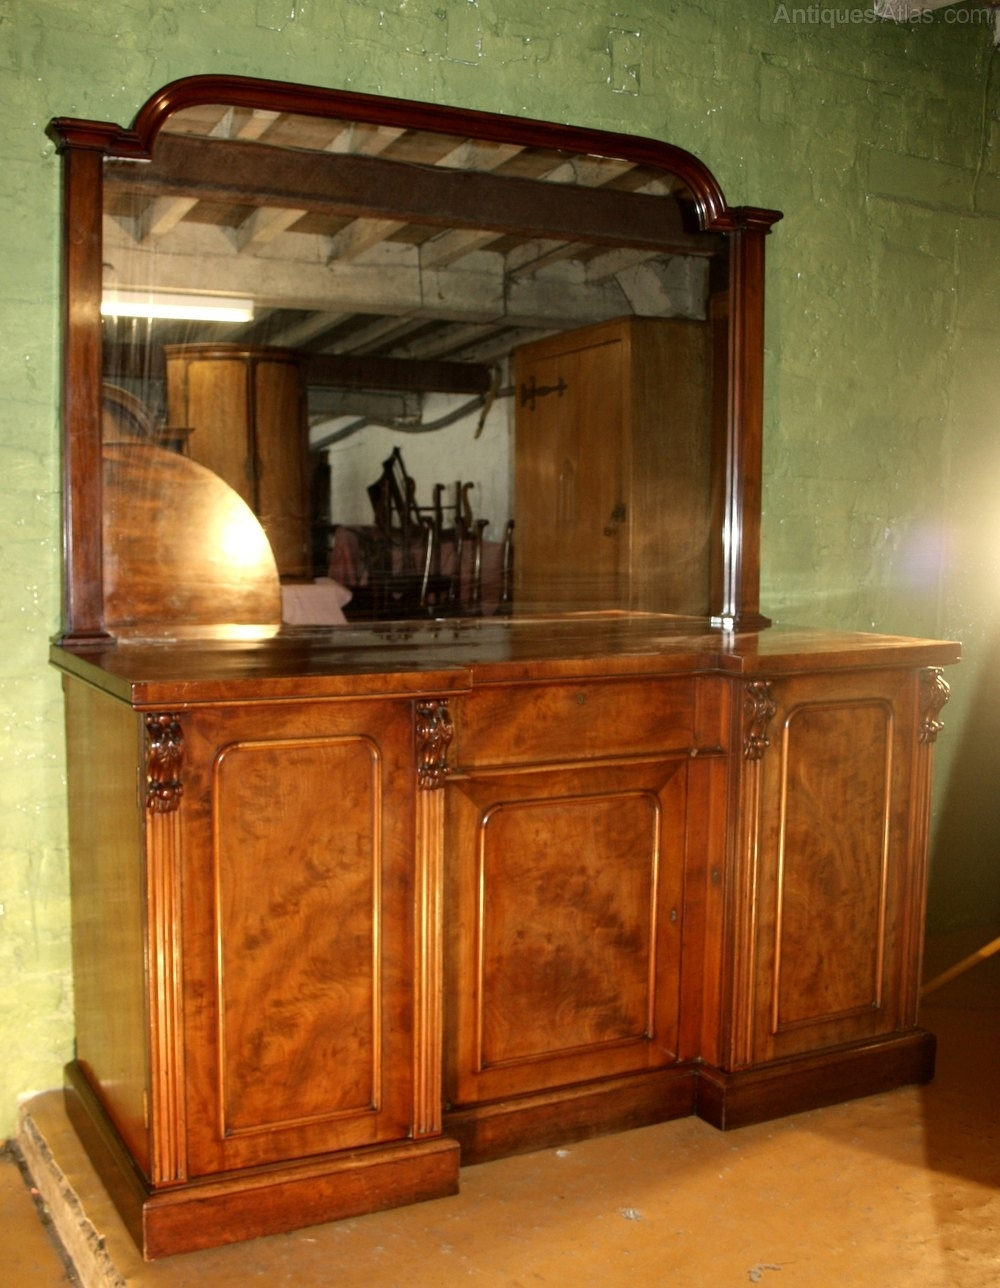 Victorian Mahogany Four Door Mirrored Sideboard - Antiques Atlas regarding Aged Mirrored 4 Door Sideboards (Image 29 of 30)